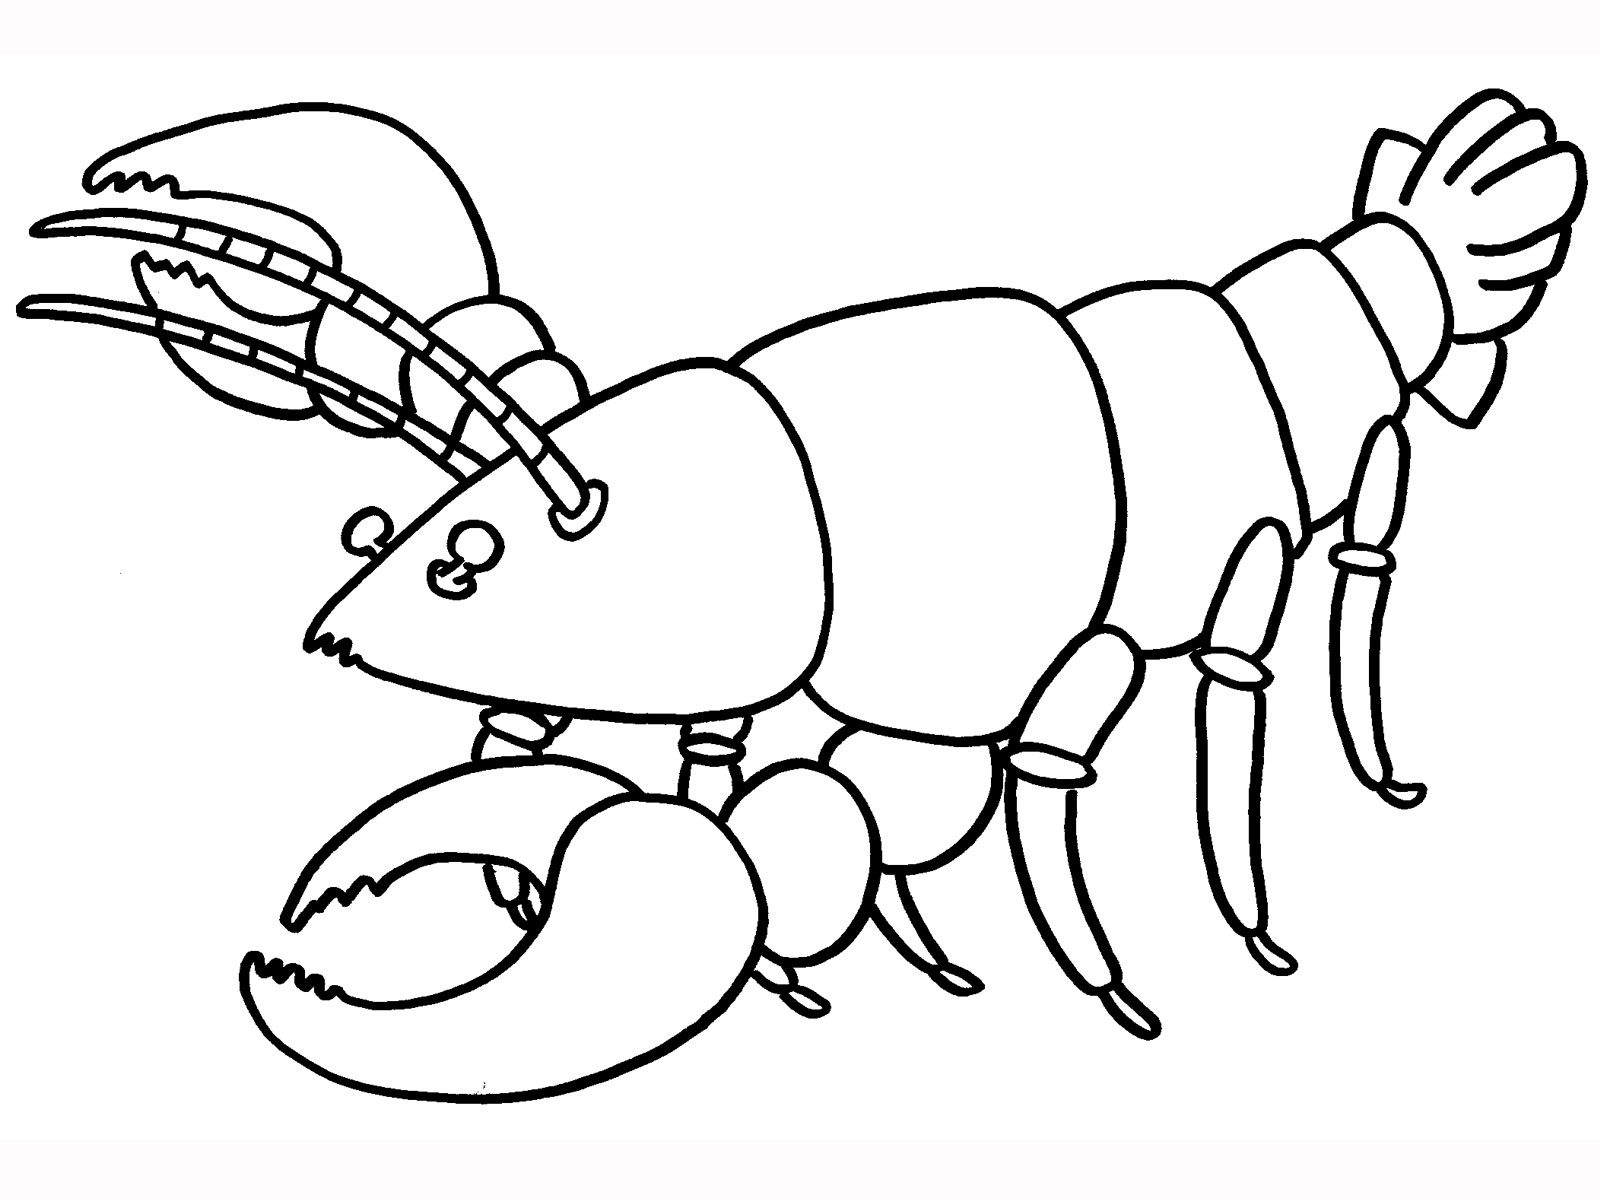 Lobster Colouring Pages